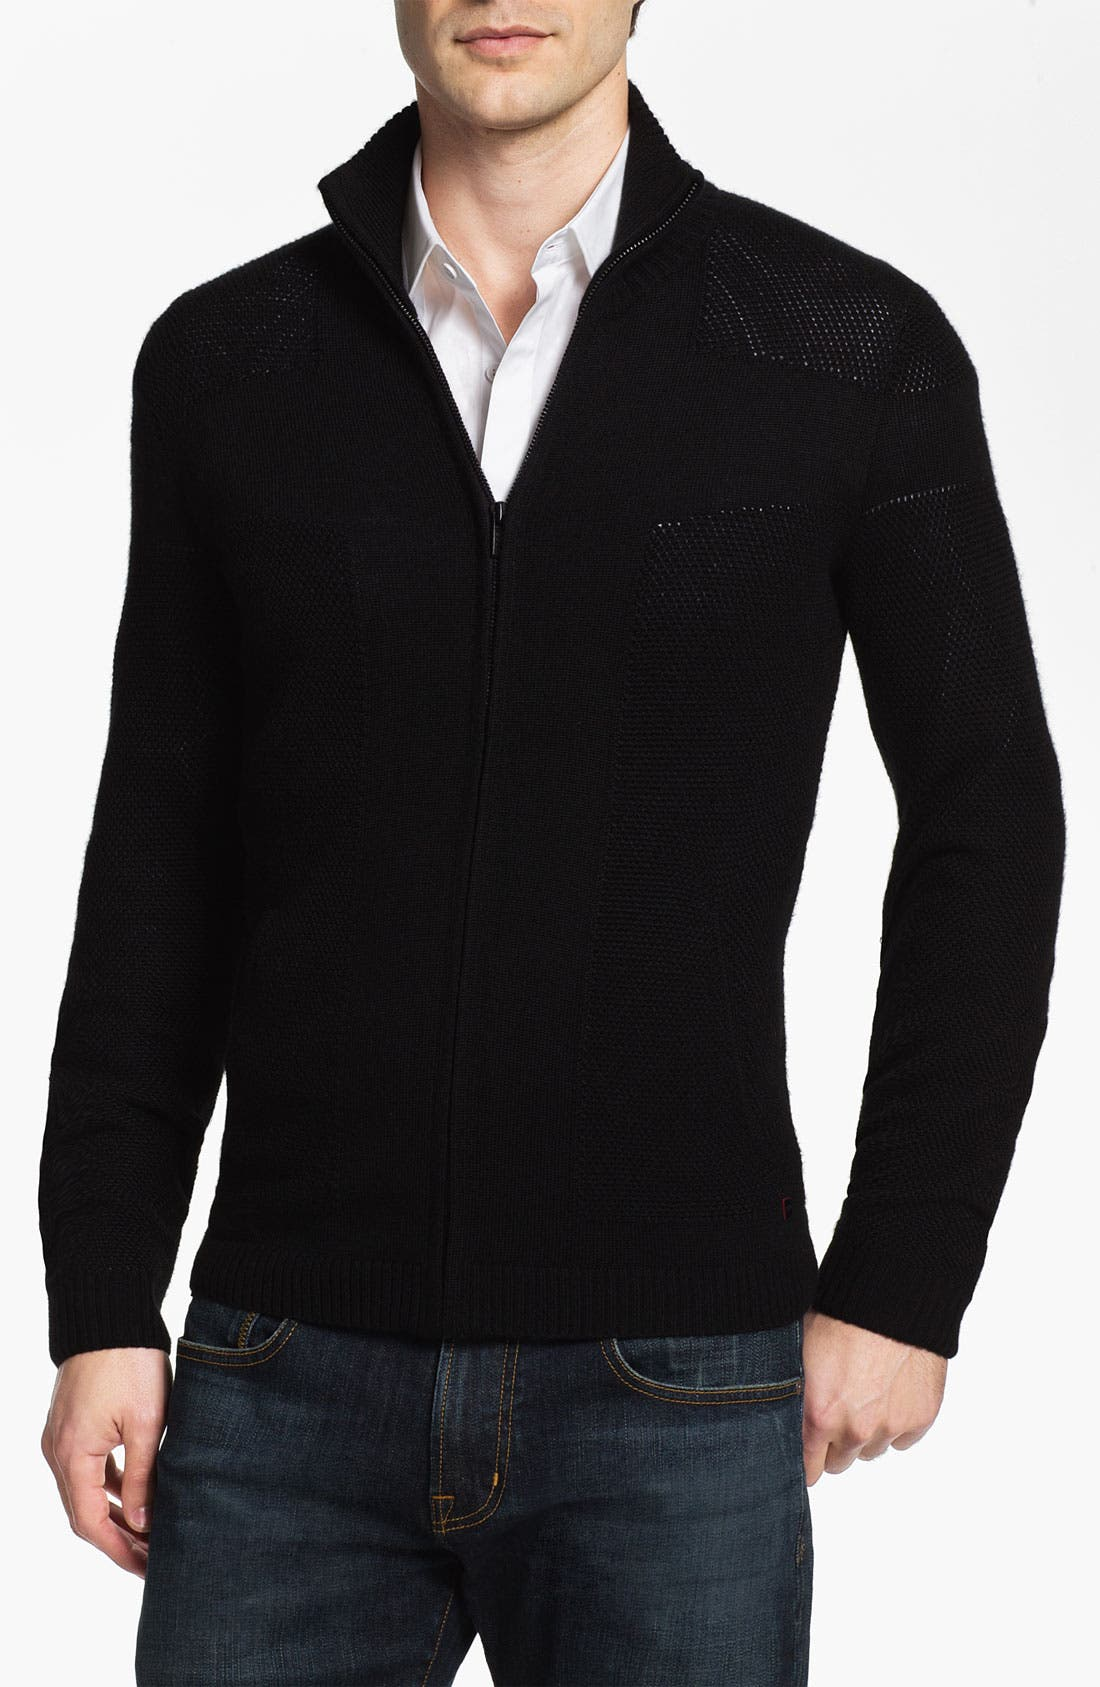 Main Image - HUGO 'Singapur' Wool Blend Zip Cardigan